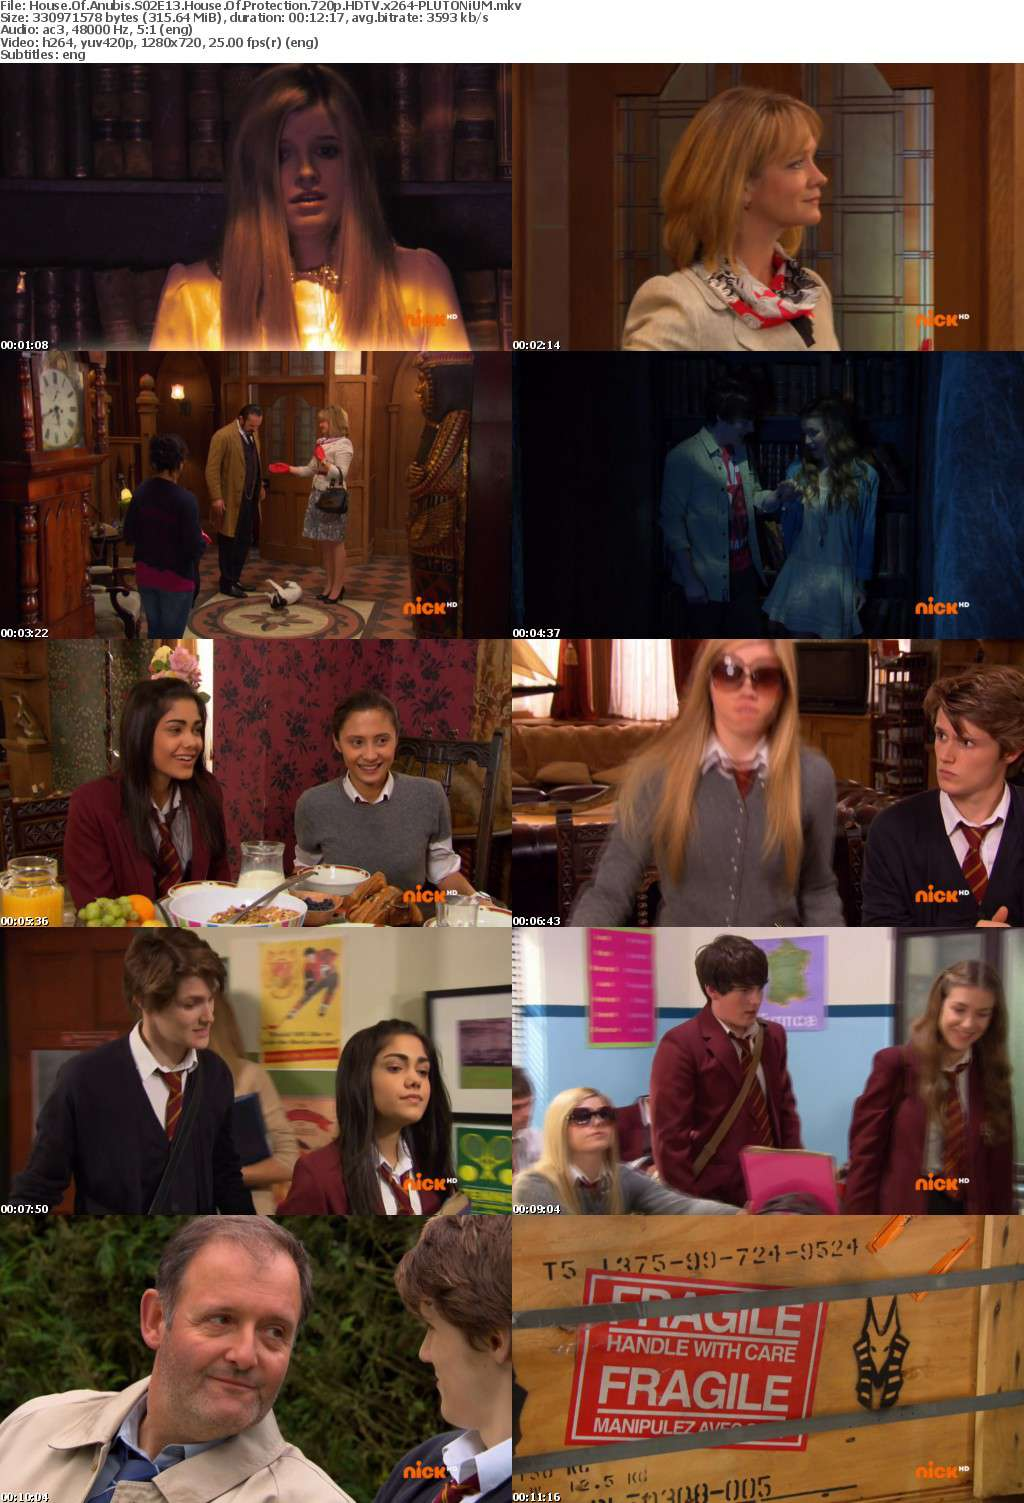 House Of Anubis S02E13 House Of Protection 720p HDTV x264-PLUTONiUM